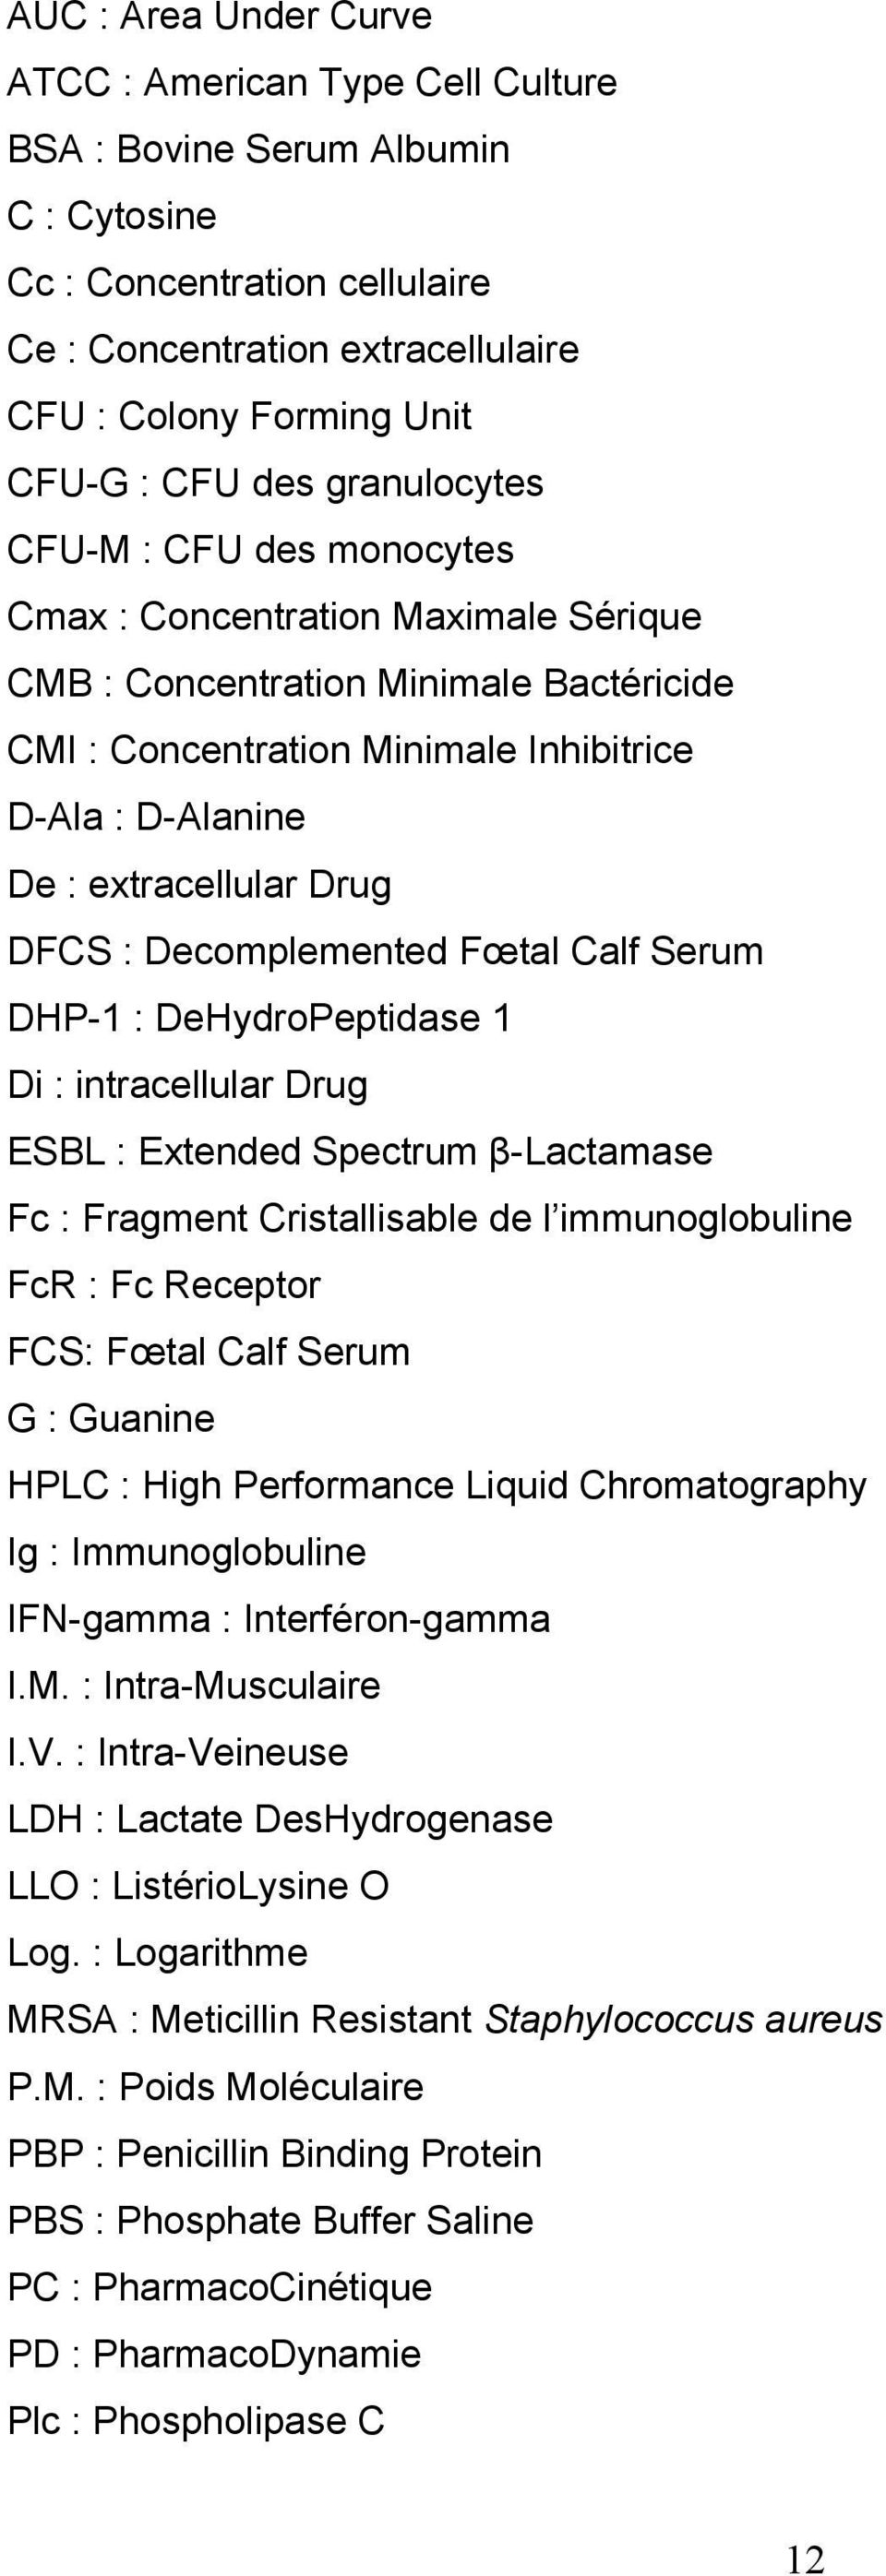 Drug DFCS : Decomplemented Fœtal Calf Serum DHP-1 : DeHydroPeptidase 1 Di : intracellular Drug ESBL : Extended Spectrum β-lactamase Fc : Fragment Cristallisable de l immunoglobuline FcR : Fc Receptor